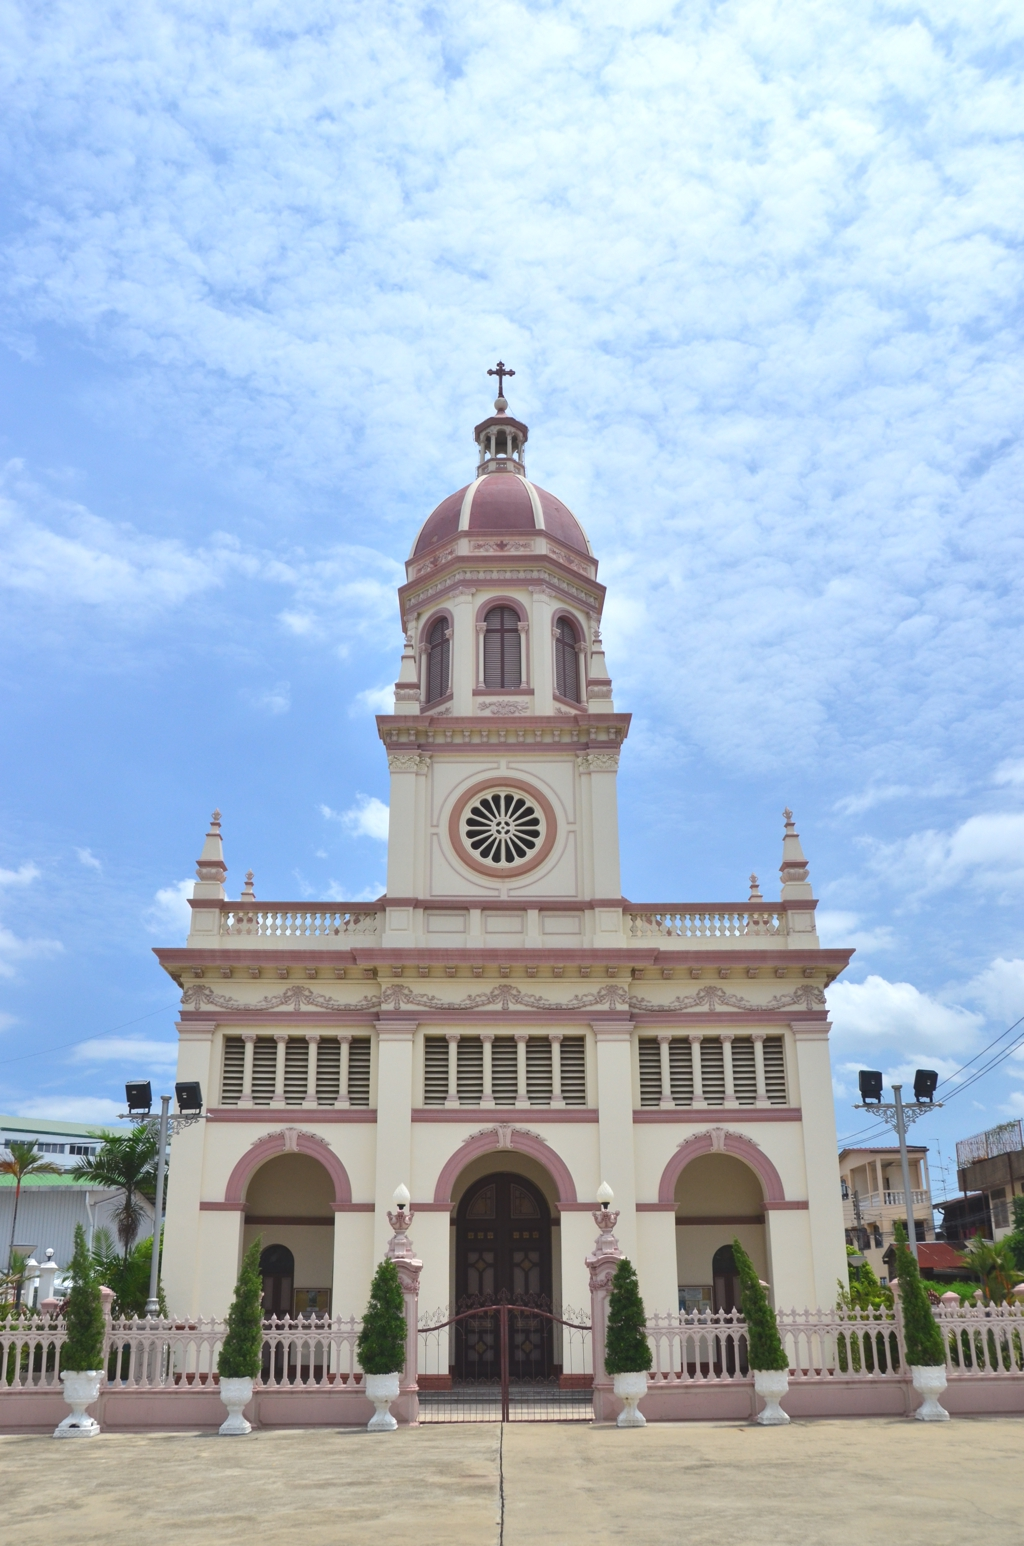 Santa Cruz Church, which was built by Portuguese Catholics during the late 18th century, seems slightly out of place on Bangkok's west bank